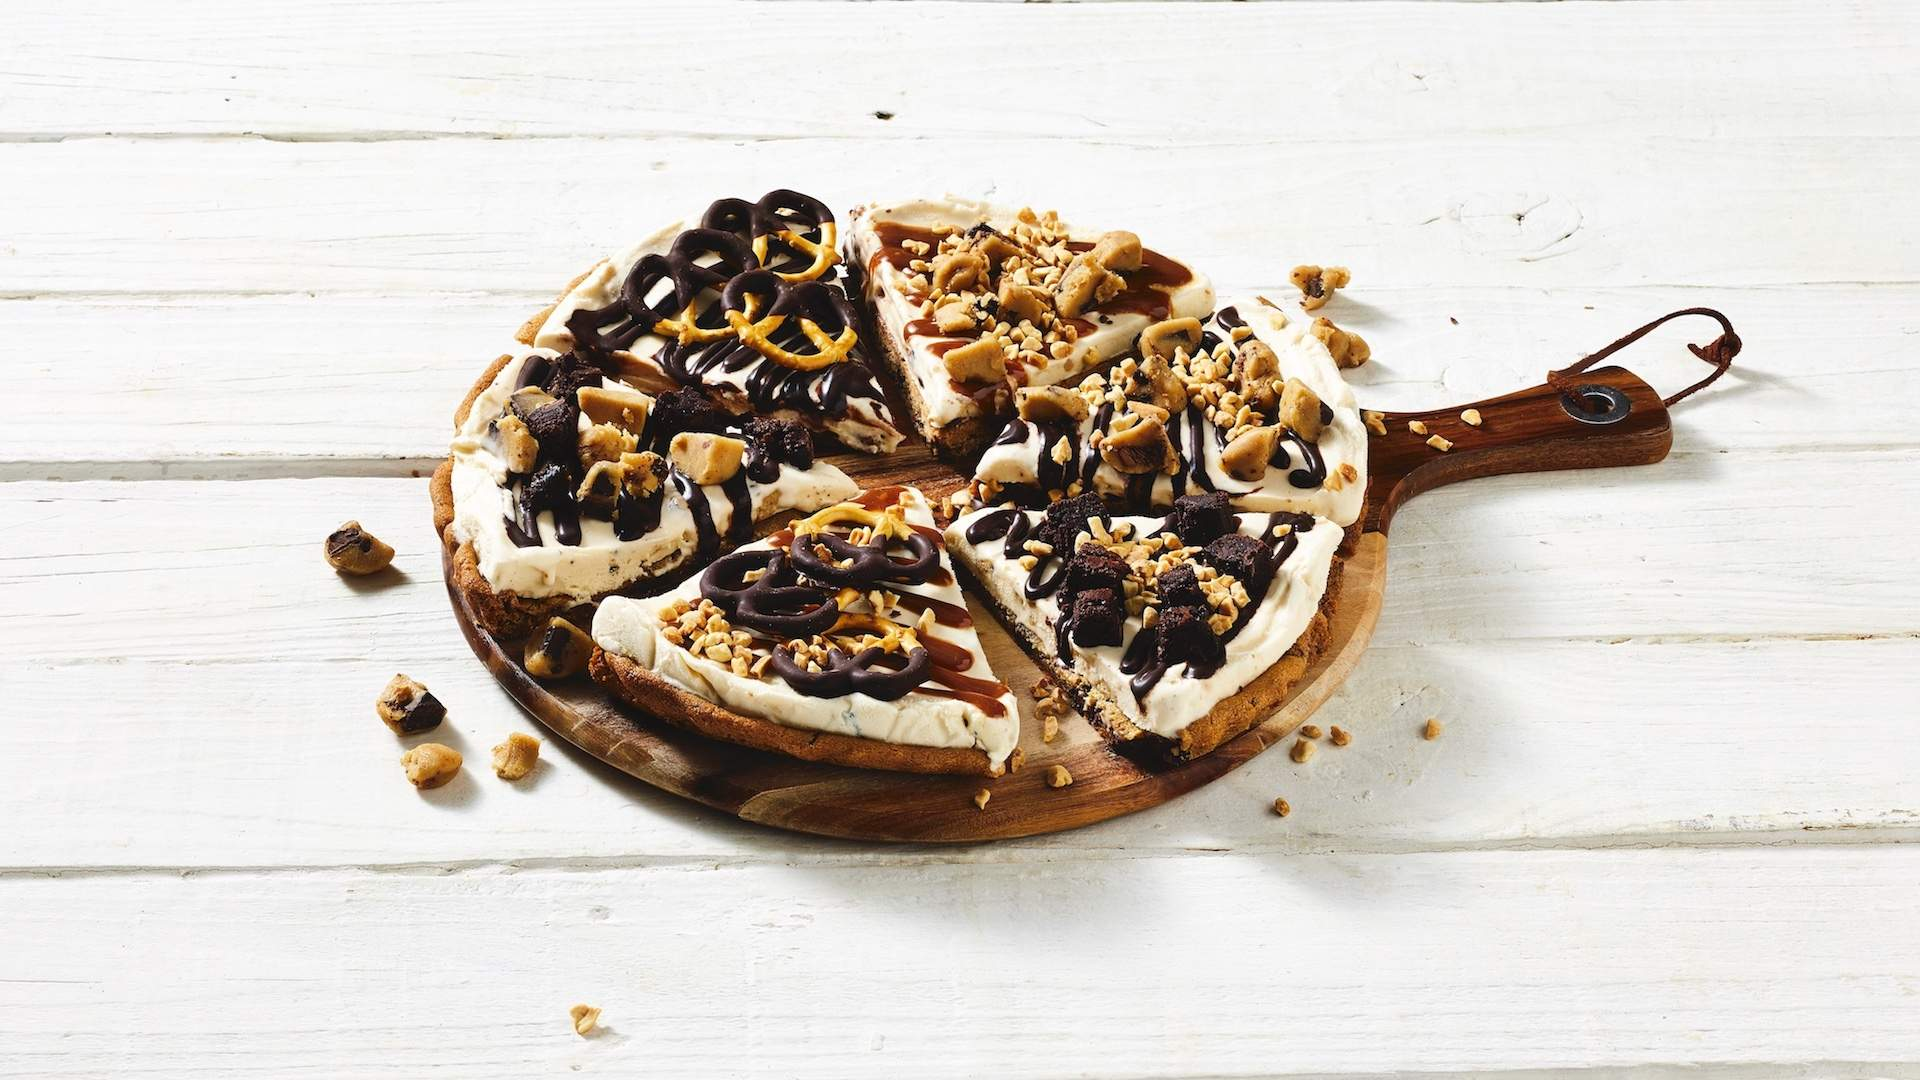 Ben & Jerry's Has Released an OTT Hot Fudge-Topped Ice Cream Pizza